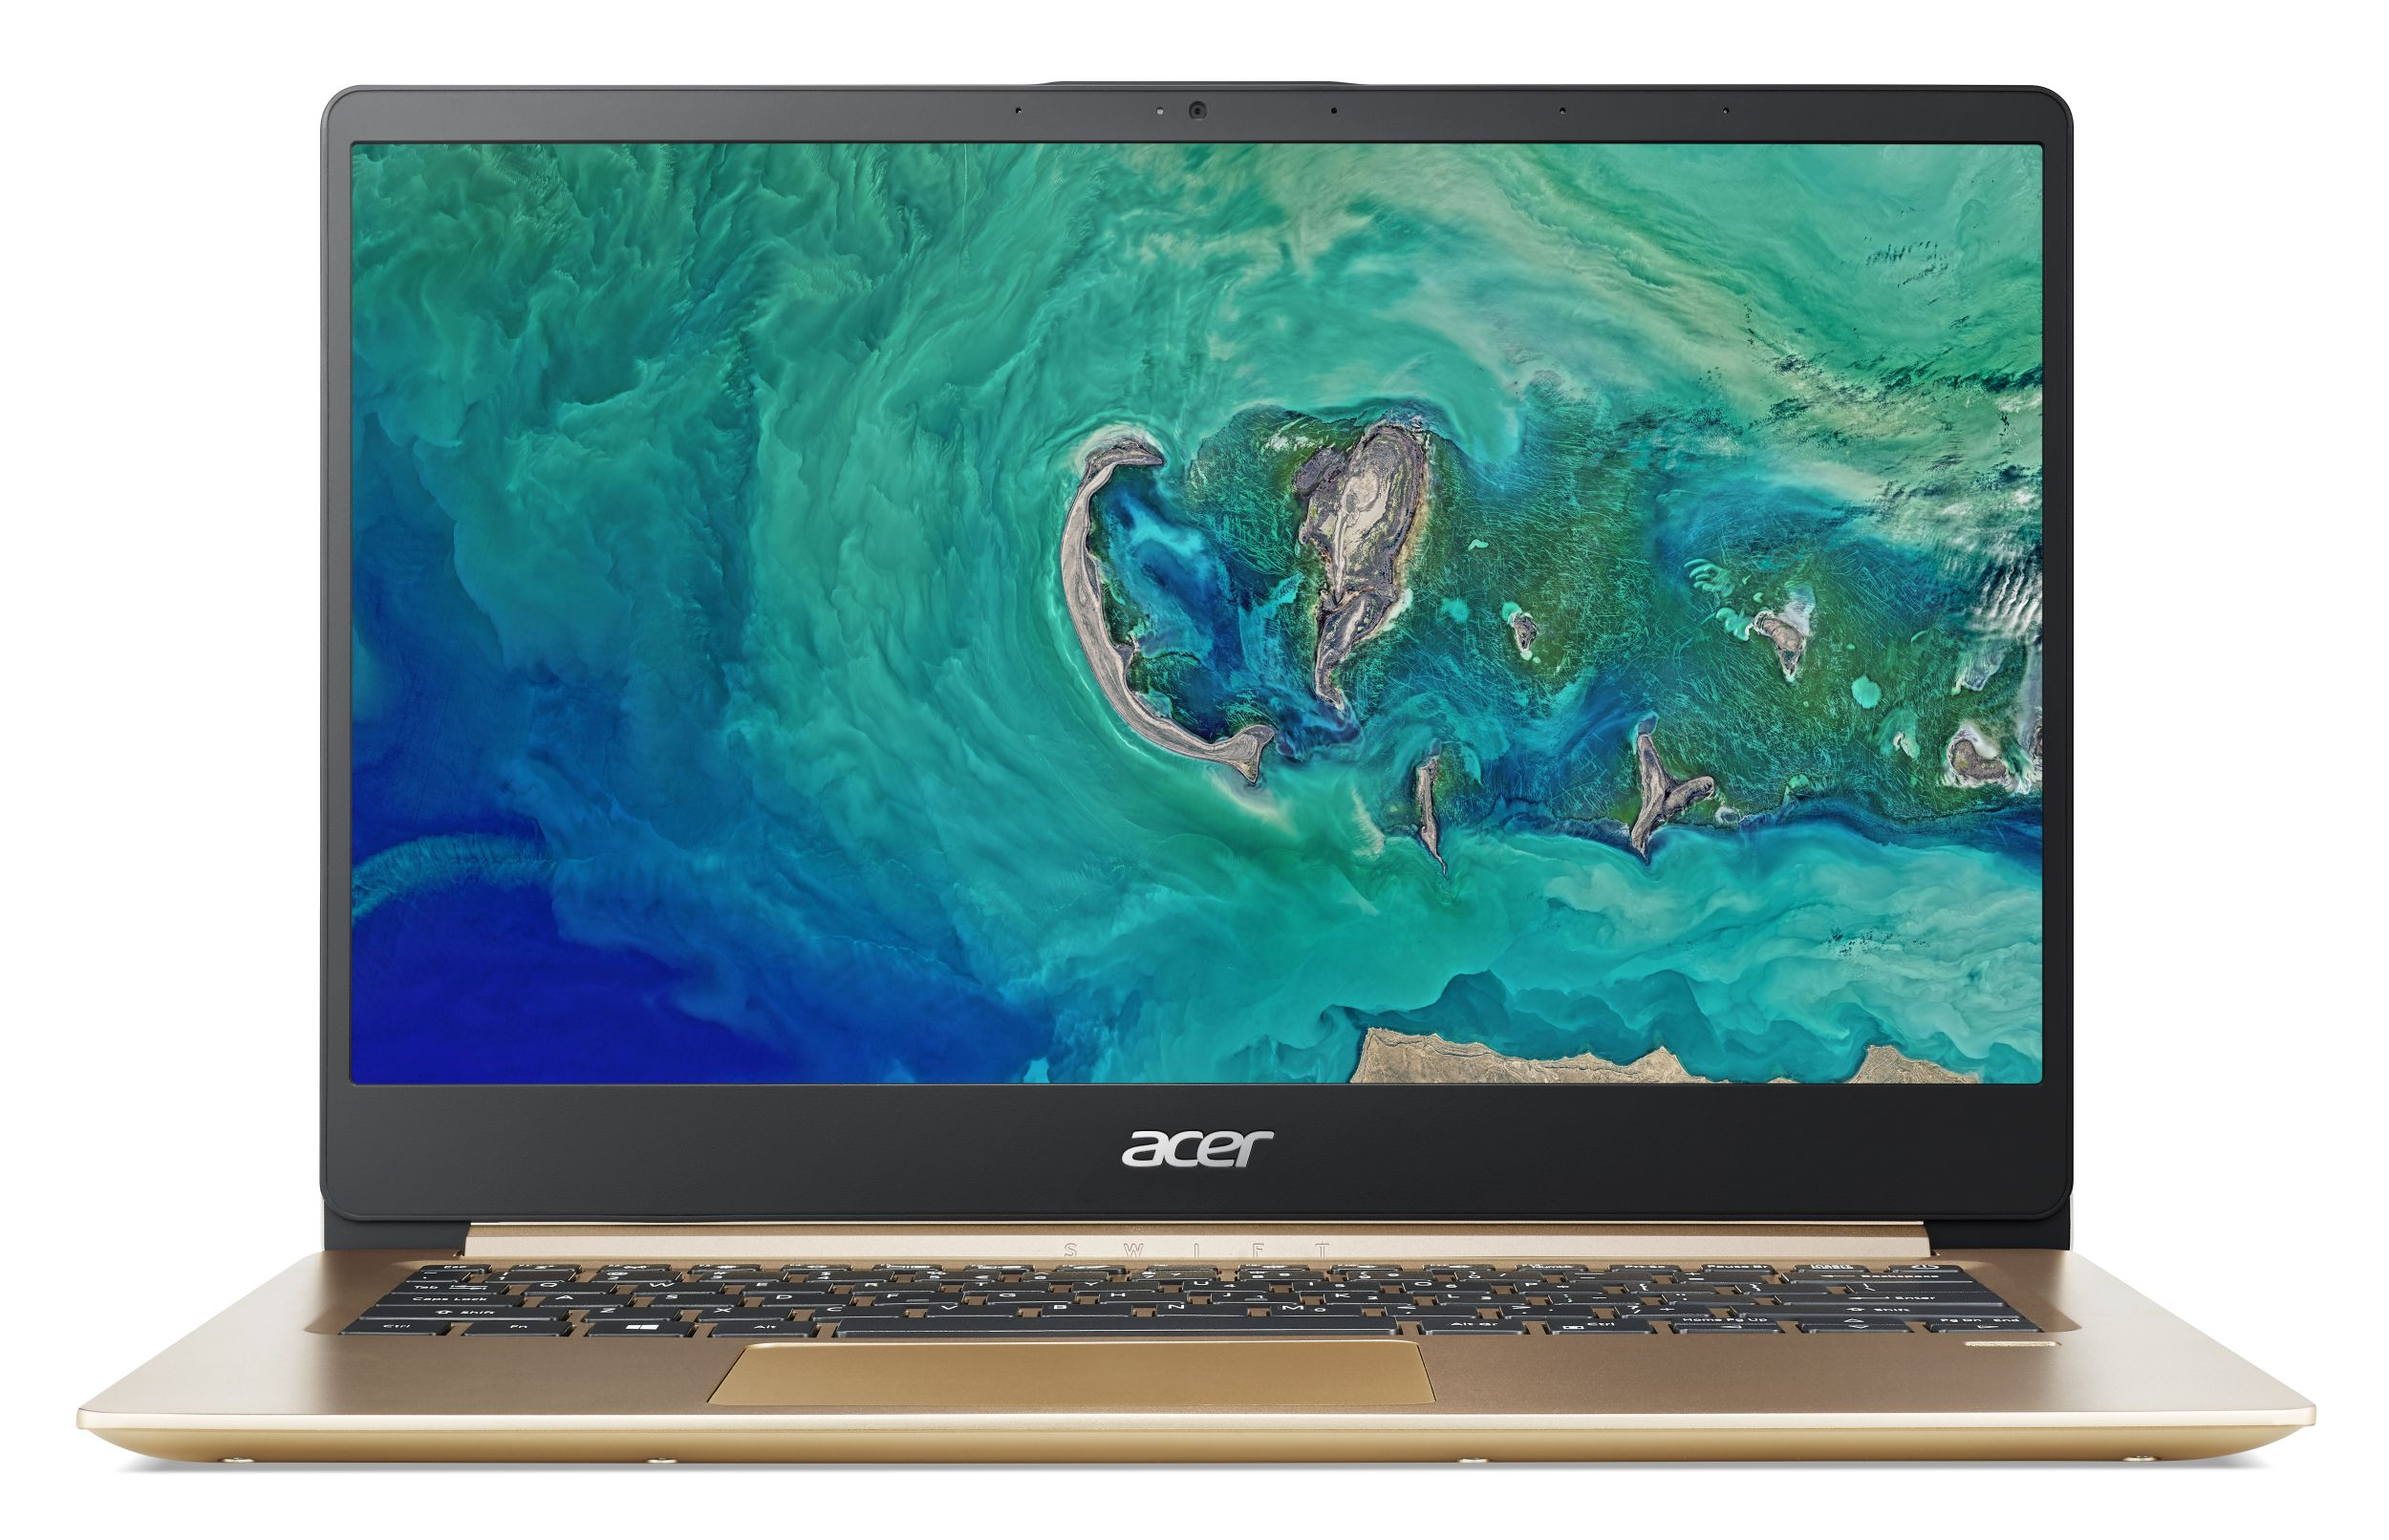 "Acer Swift 1 (SF114-32-P13K) Pentium N5000/4GB+N/128GB SSD M.2+N/A/HD Graphics/14"" FHD matný/BT/W10 Home/Gold"